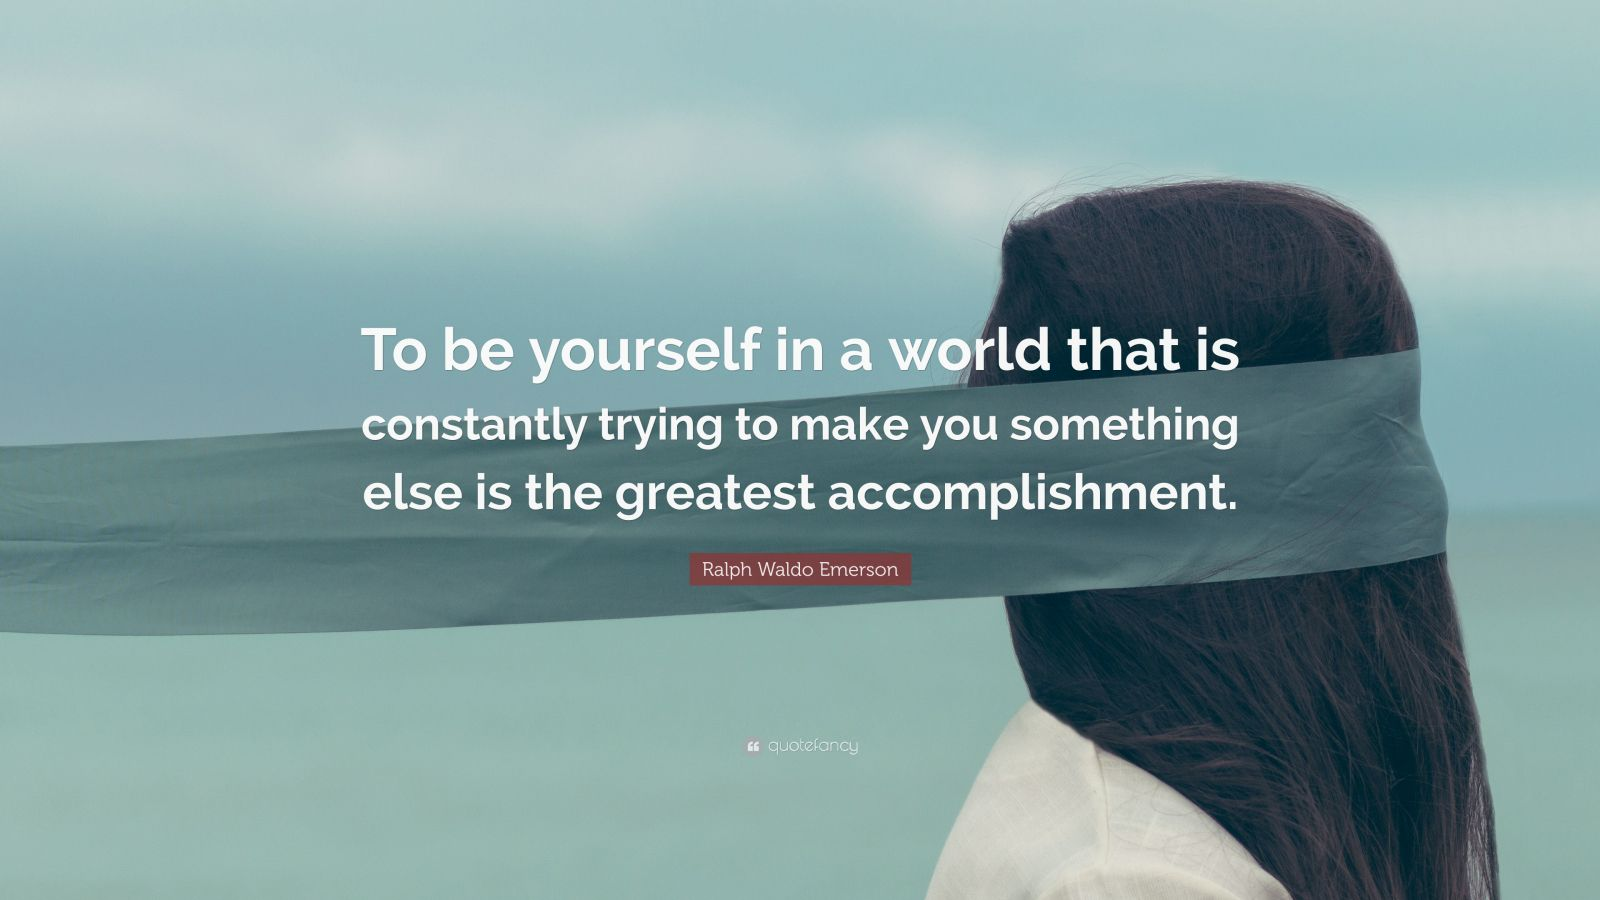 """Ralph Waldo Emerson Quote: """"To be yourself in a world that is constantly trying to make you something else is the greatest accomplishment."""""""